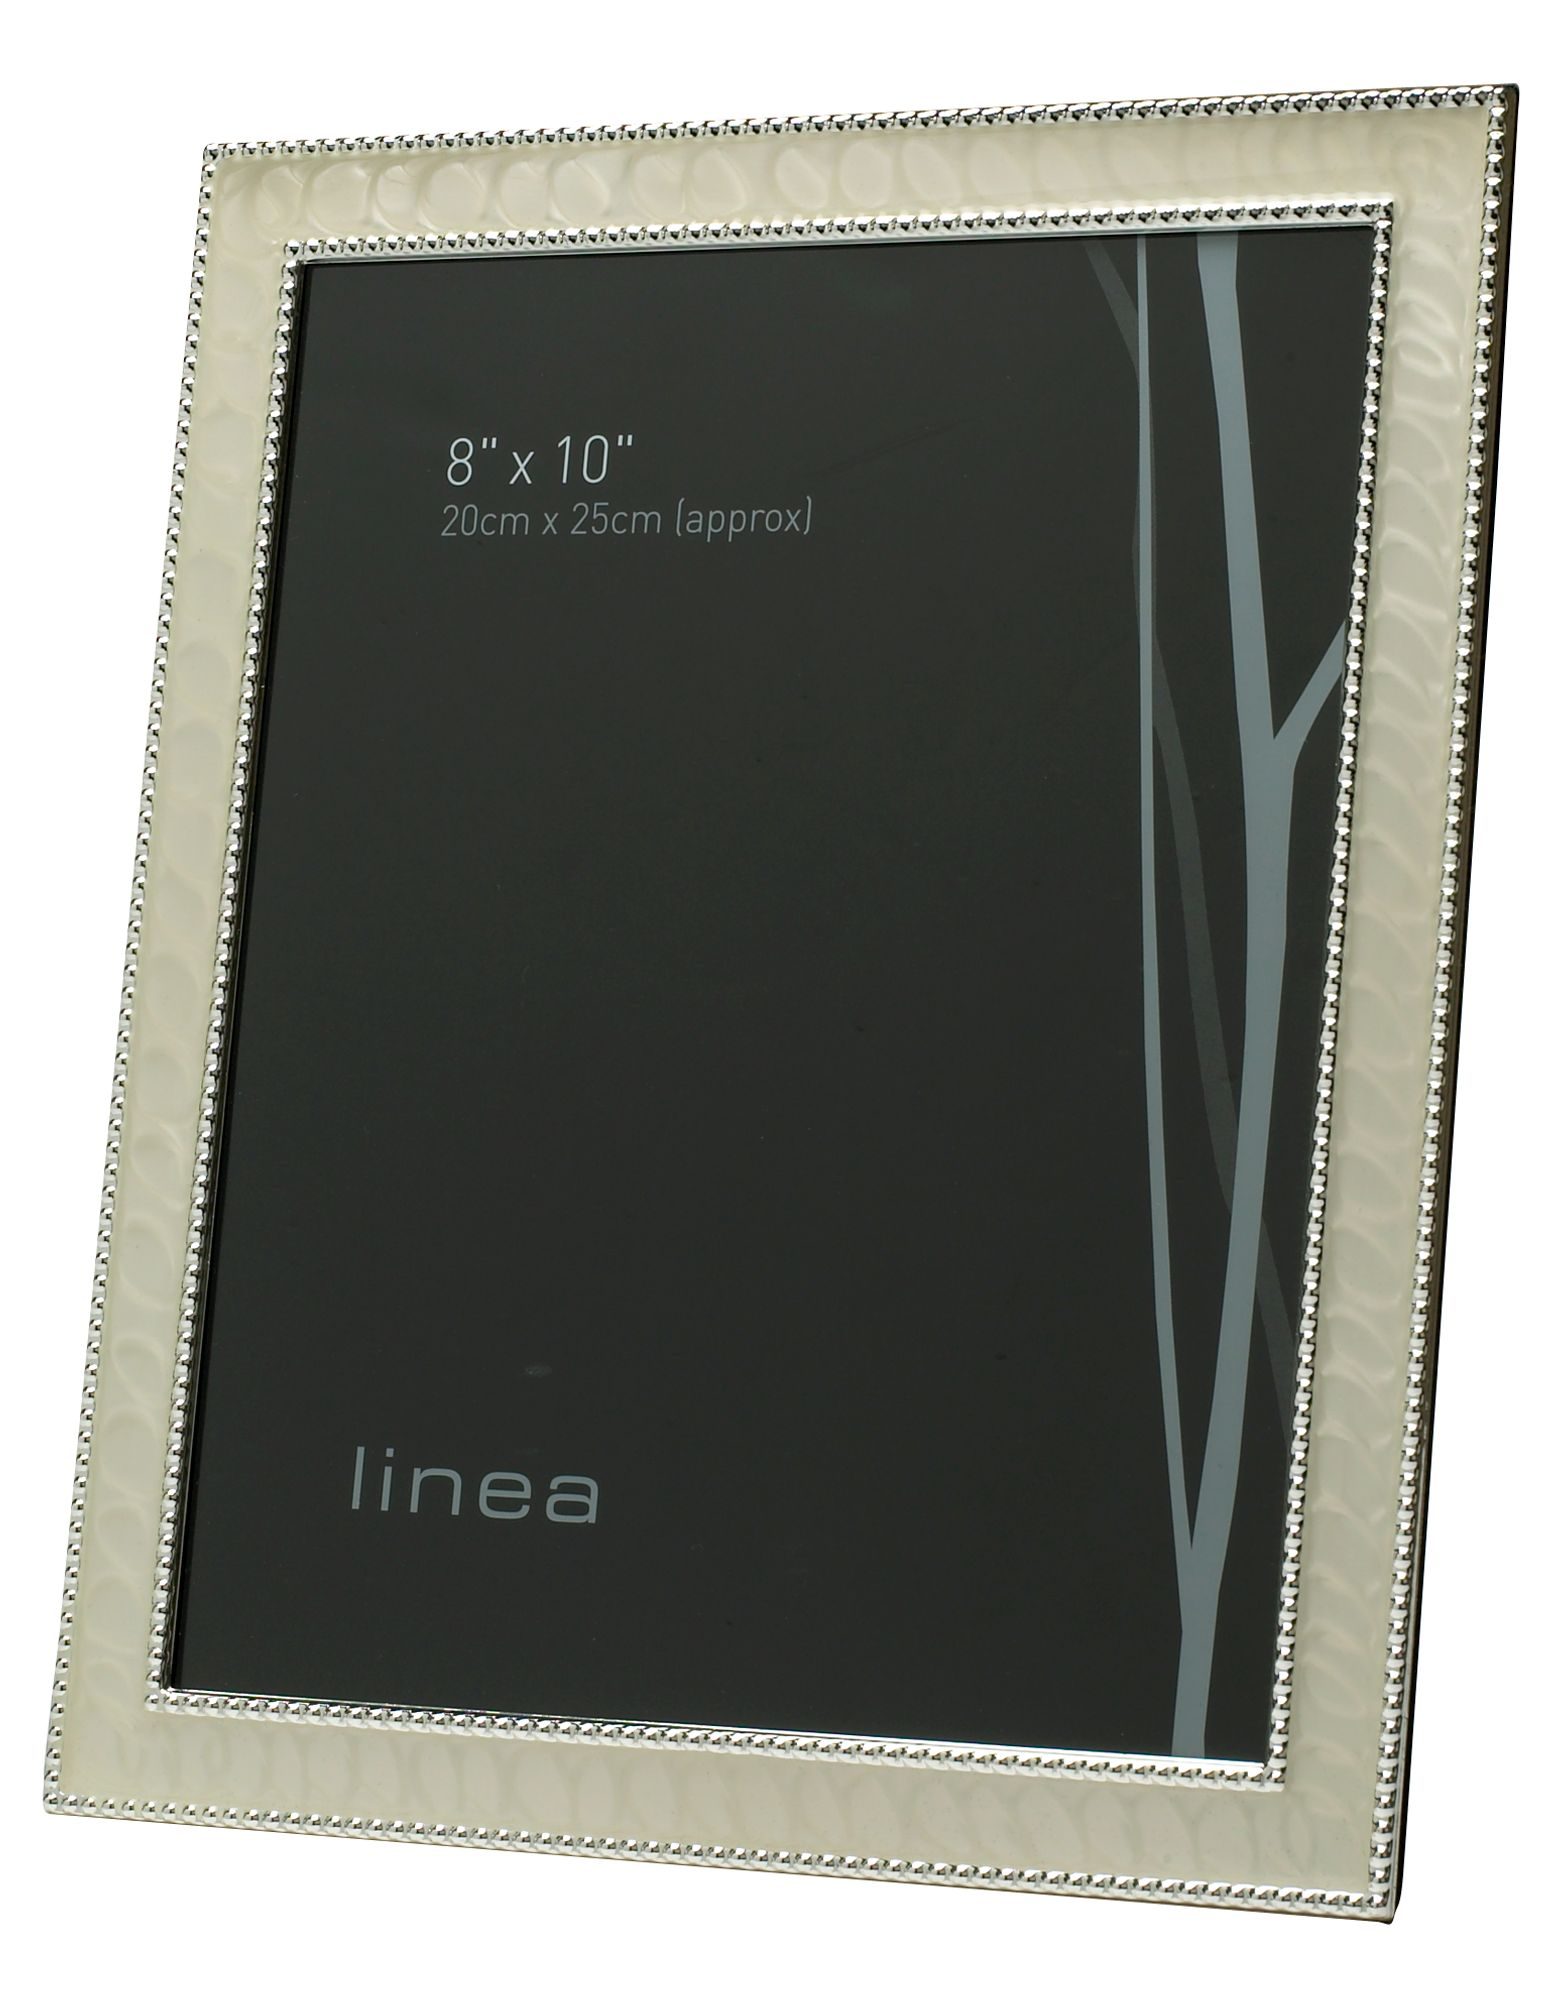 Image of Linea 8 x 10 beaded enamel photo frame